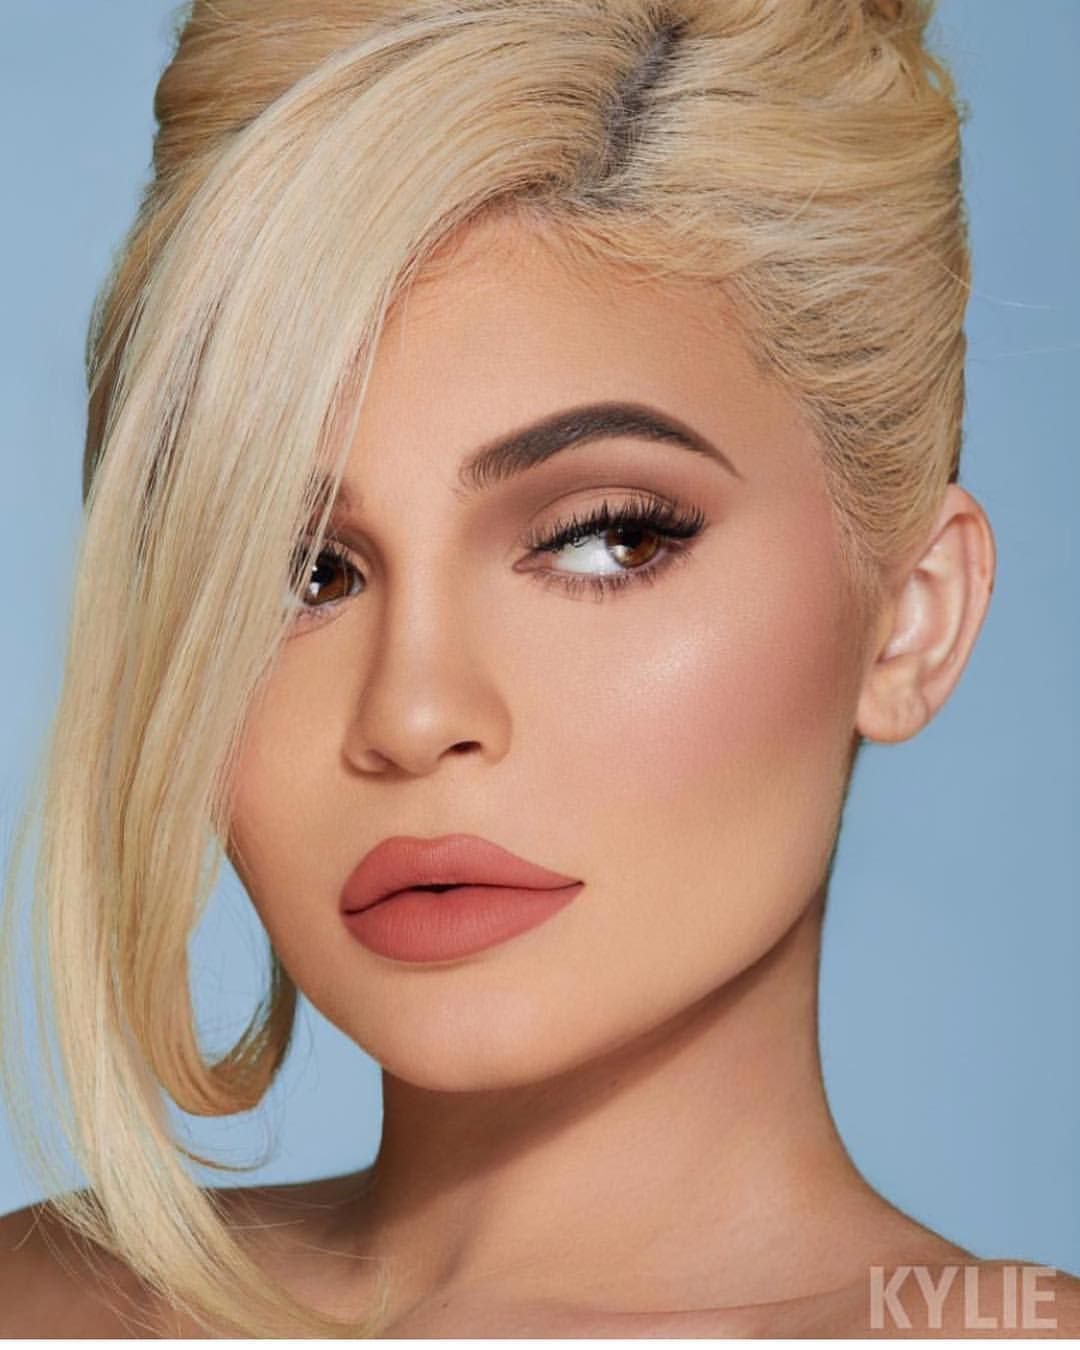 Hrush Achemyan On Instagram New Campaign For The Holidays With Kyliejenner Kyliecosmetics Makeup By St Kylie Jenner Makeup Kylie Jenner Style Kylie Makeup